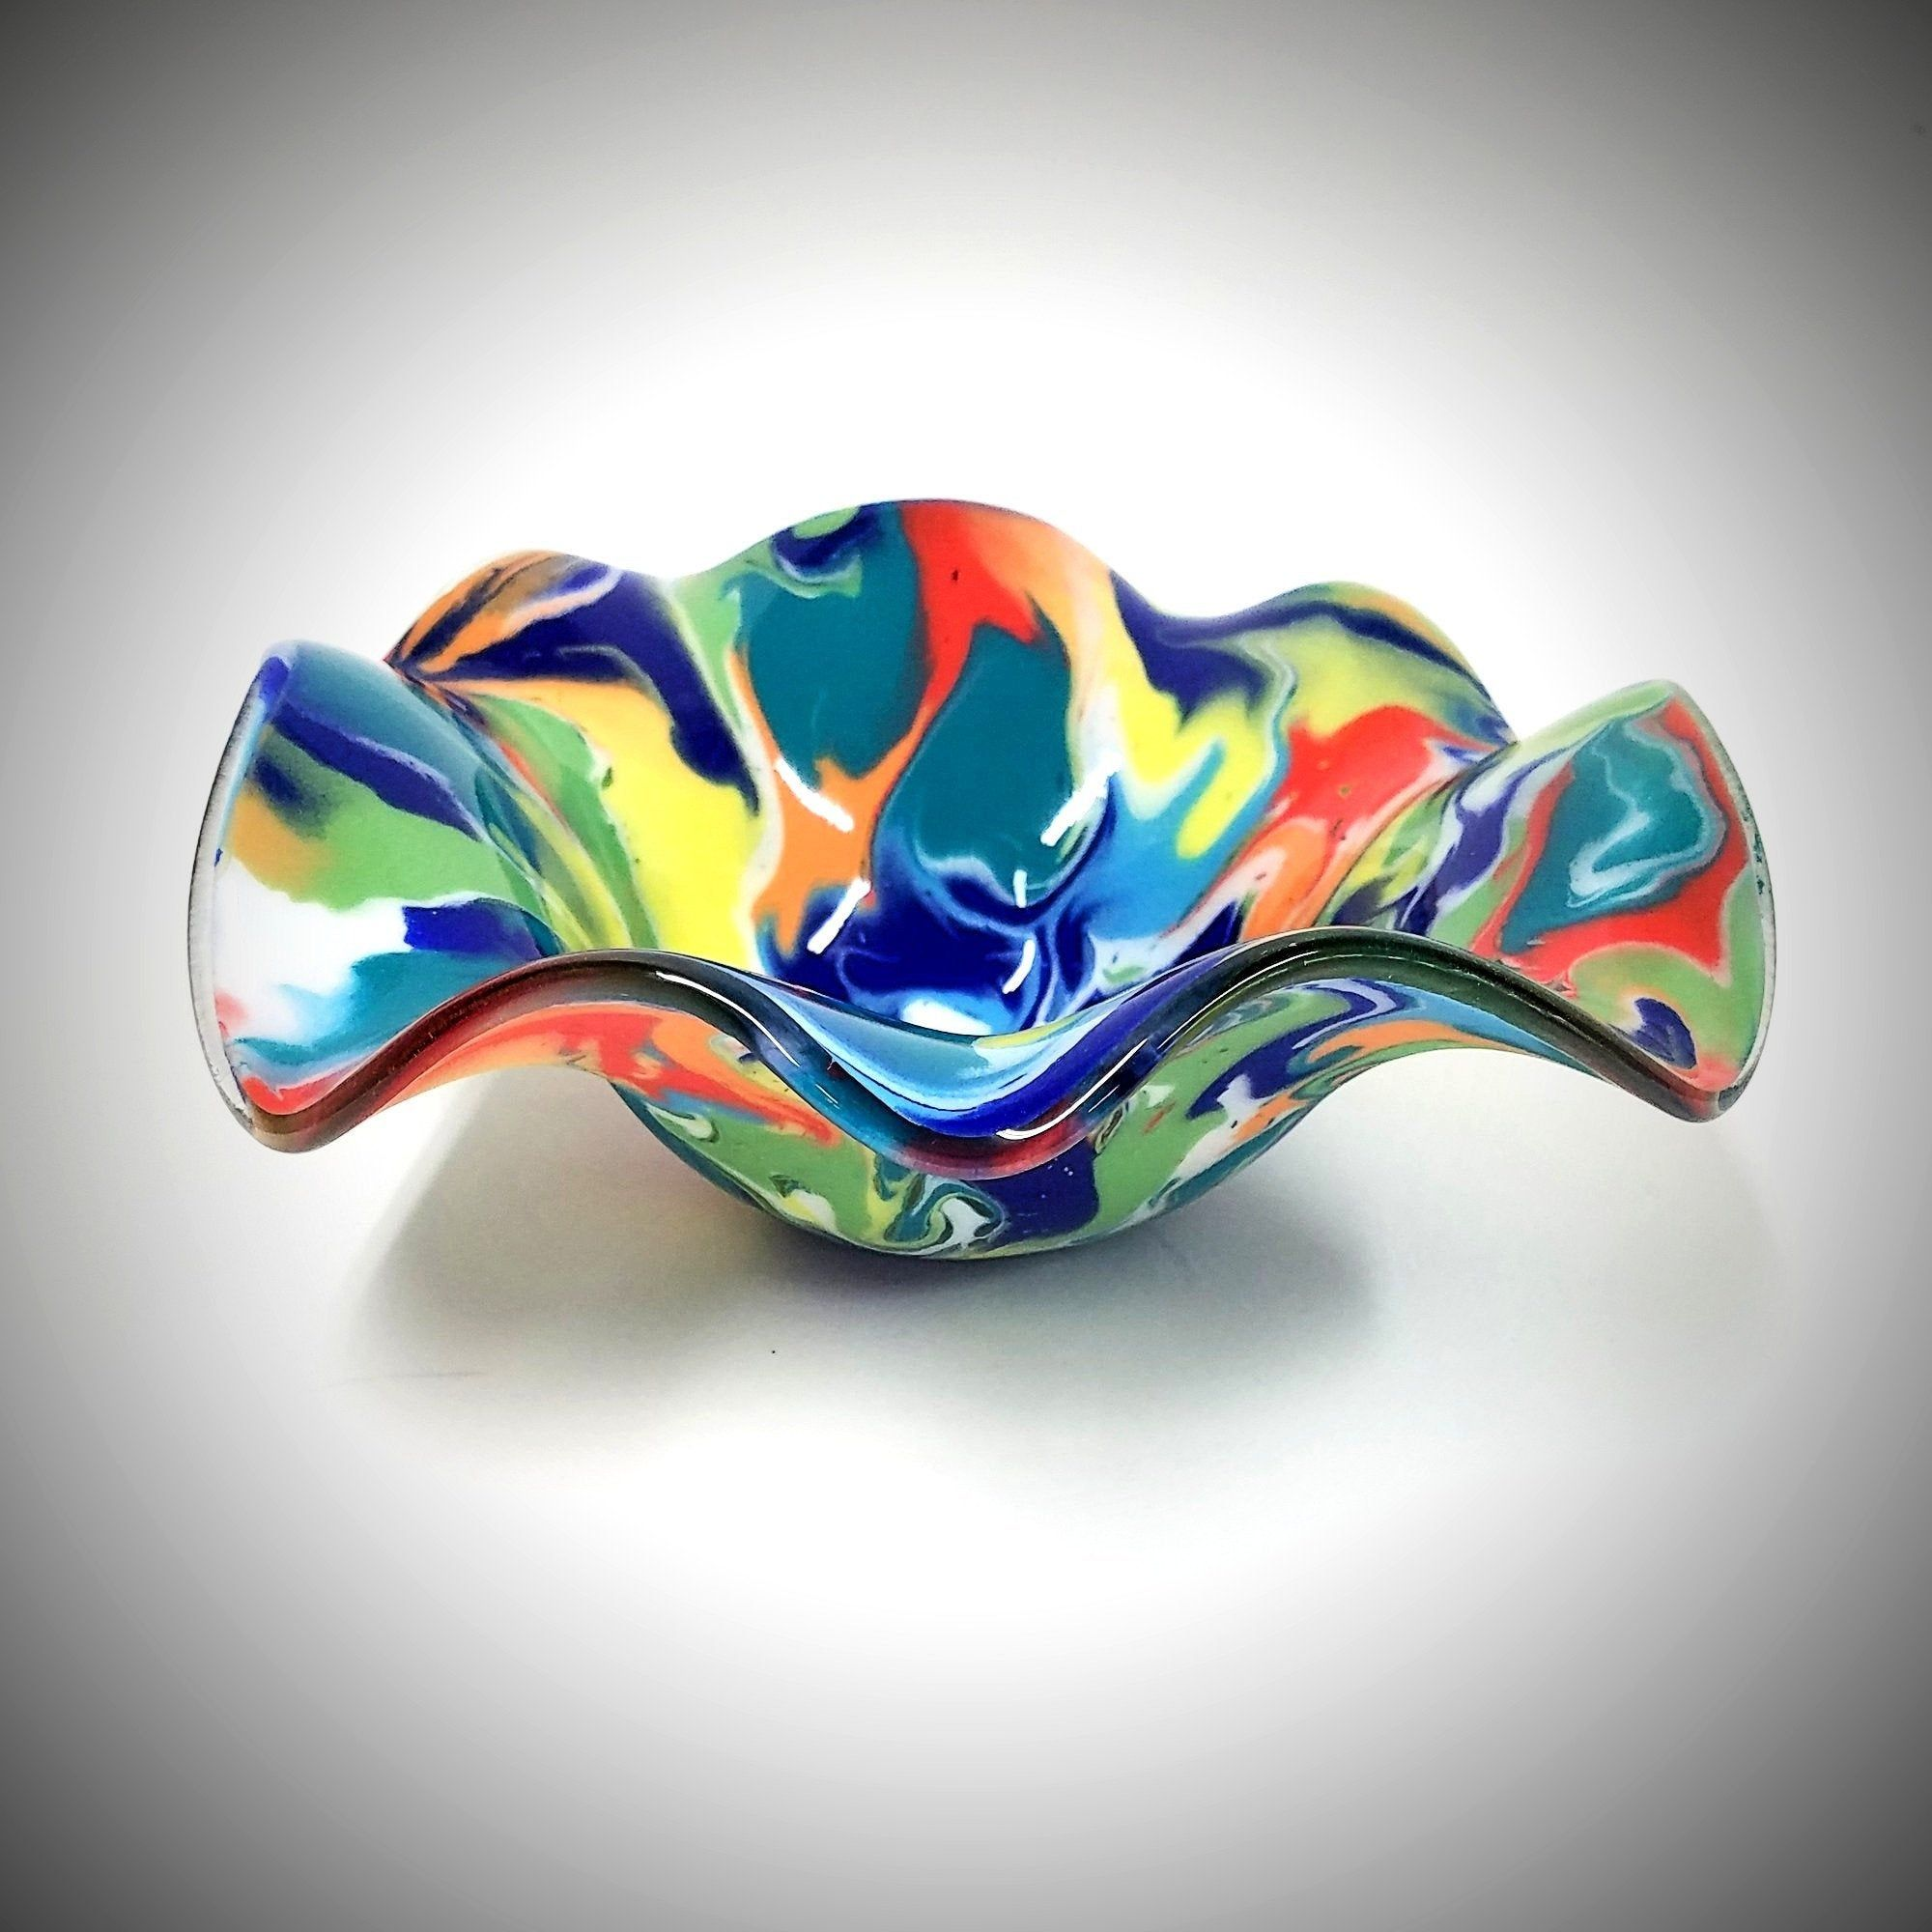 Rainbow Glass Wave Bowl   Fused Glass Art Fruit Bowl   Colorful ...